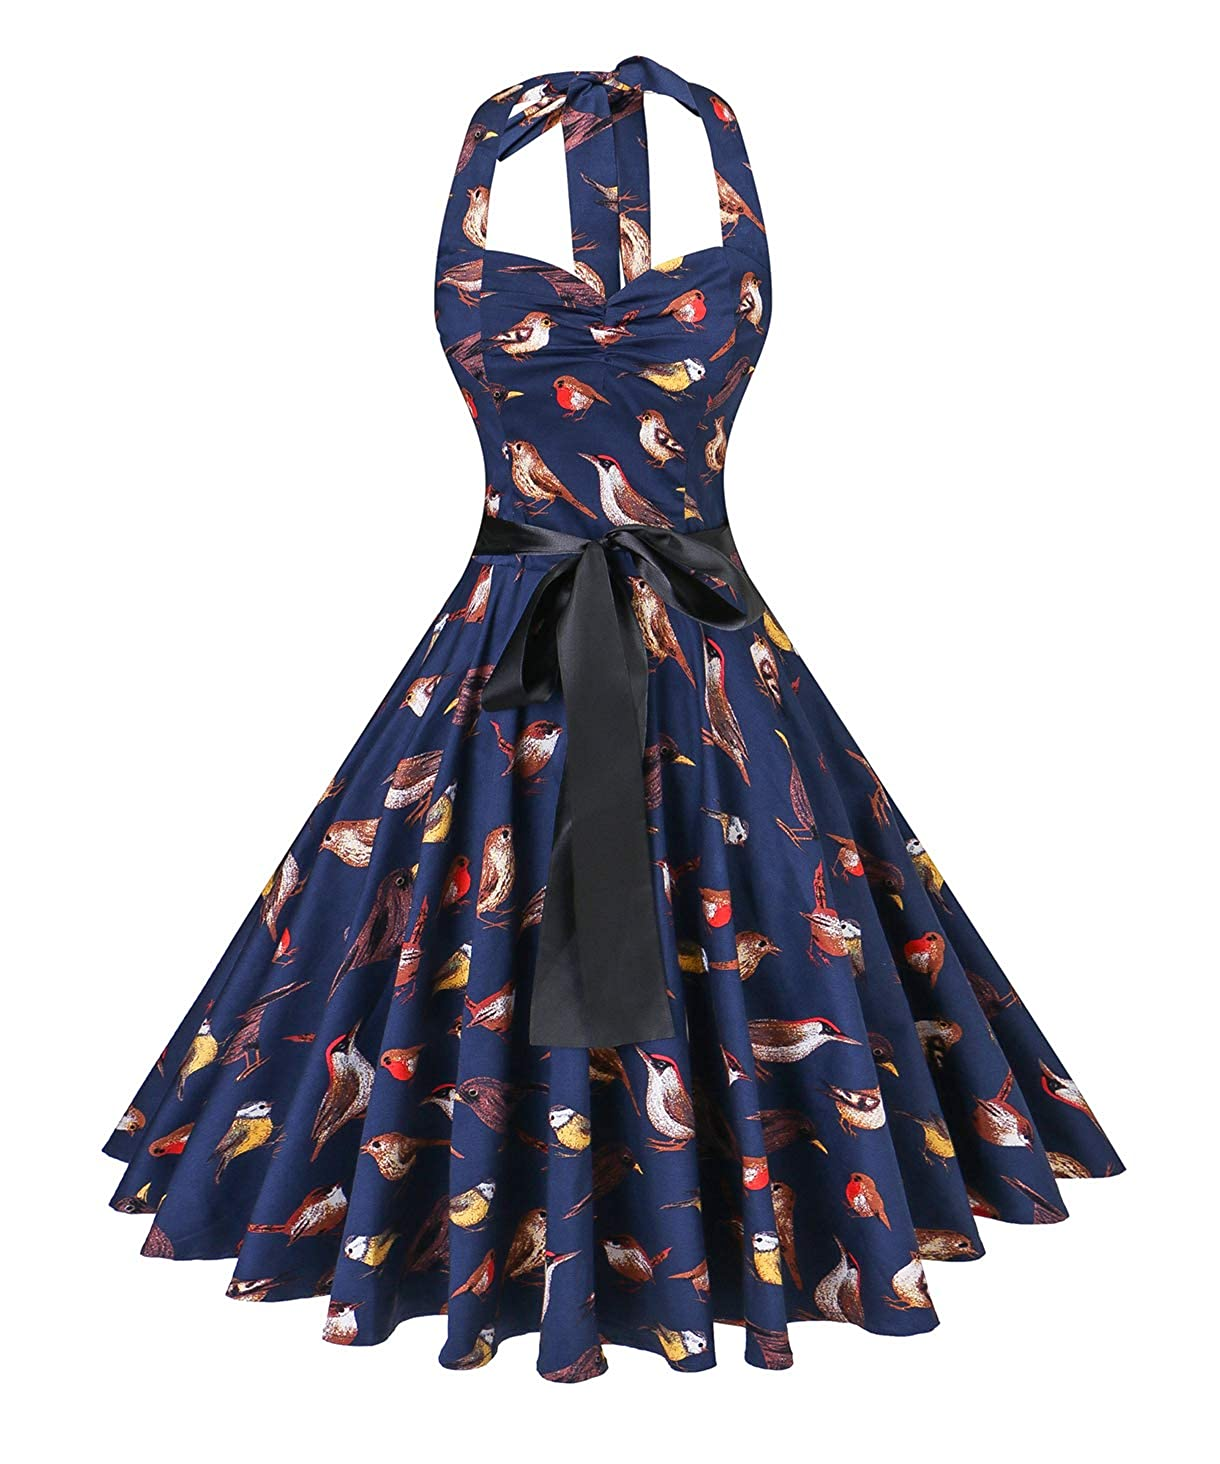 942859634 V fashion Women s Rockabilly 50s Vintage Polka Dots Halter Cocktail Swing  Dress at Amazon Women s Clothing store